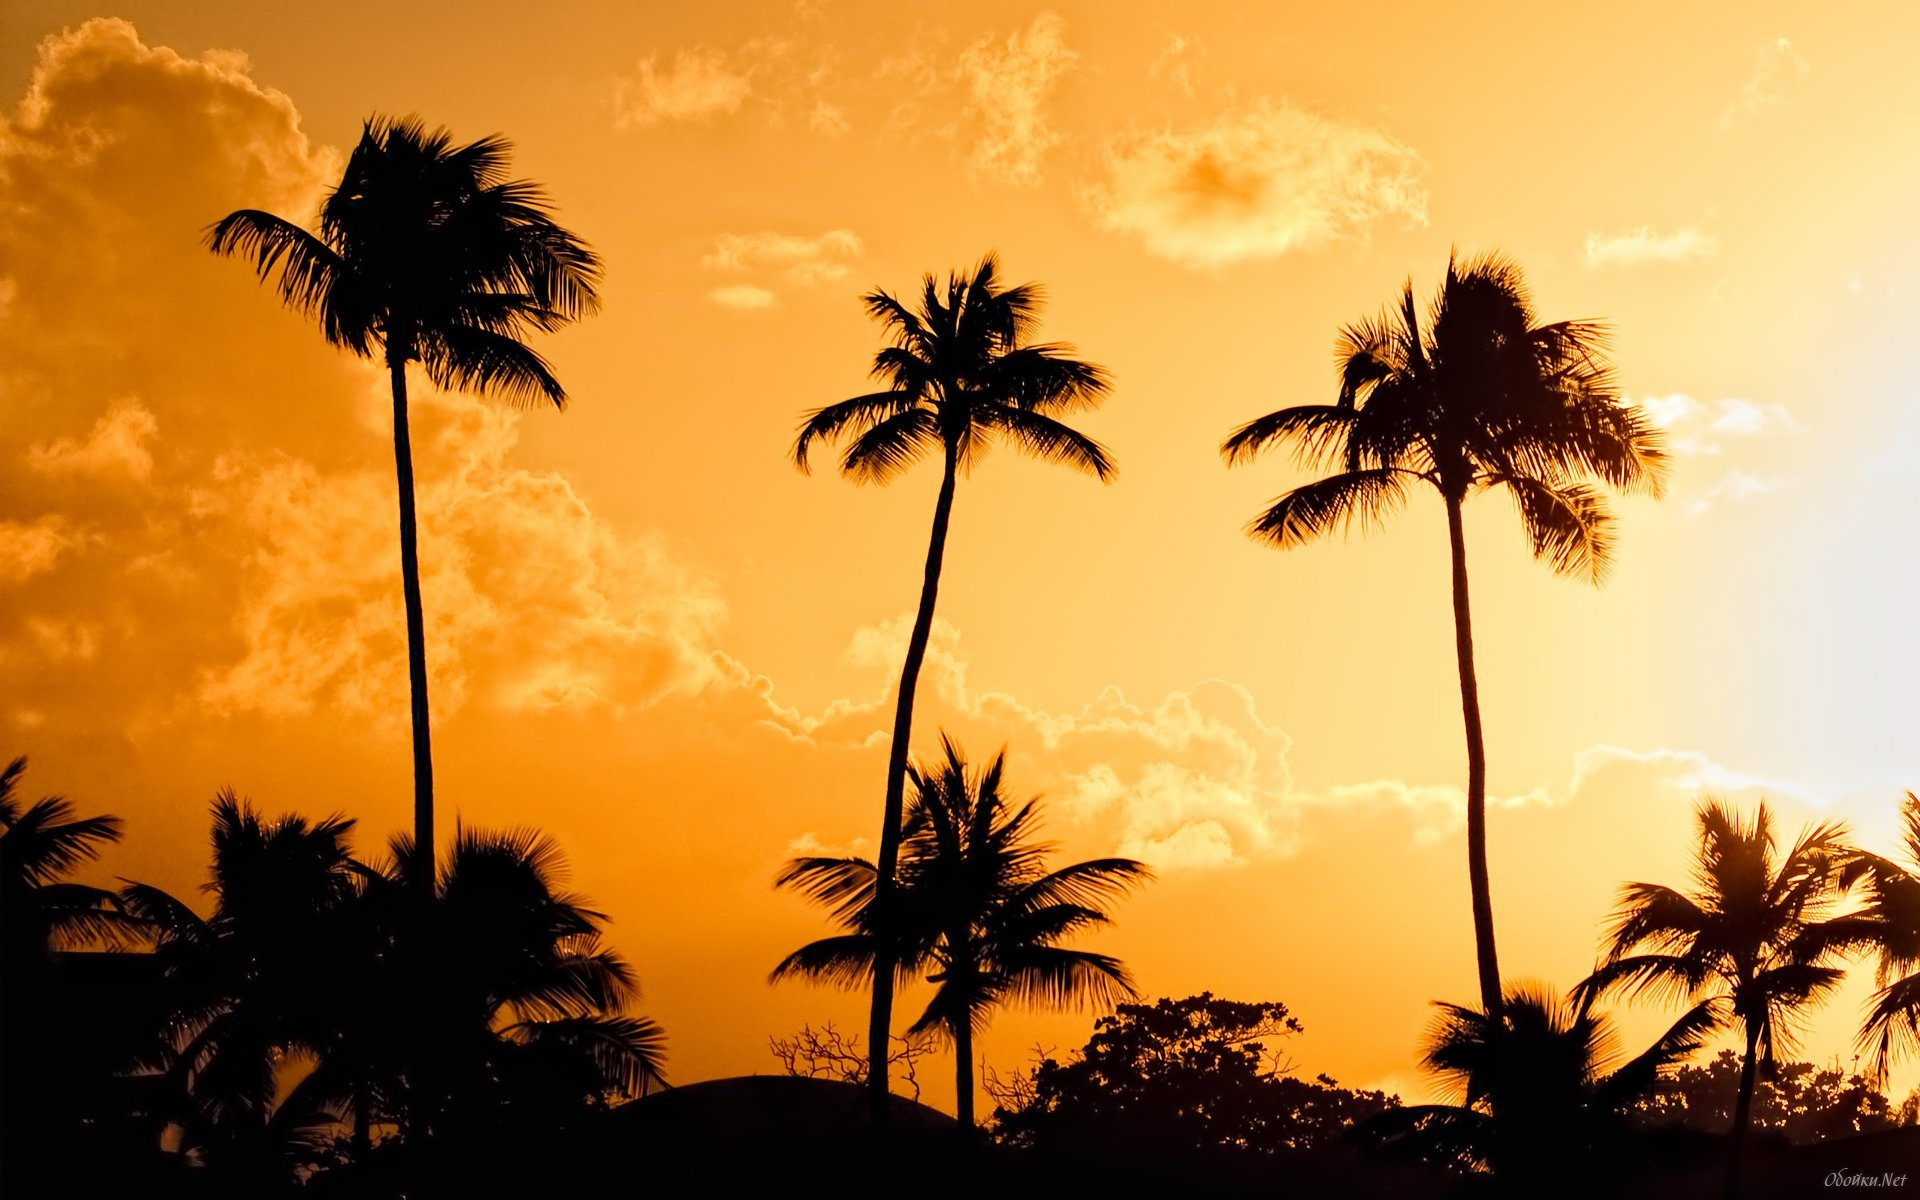 Palm trees at sunset background wallpaper HD Desktop Wallpaper 1920x1200